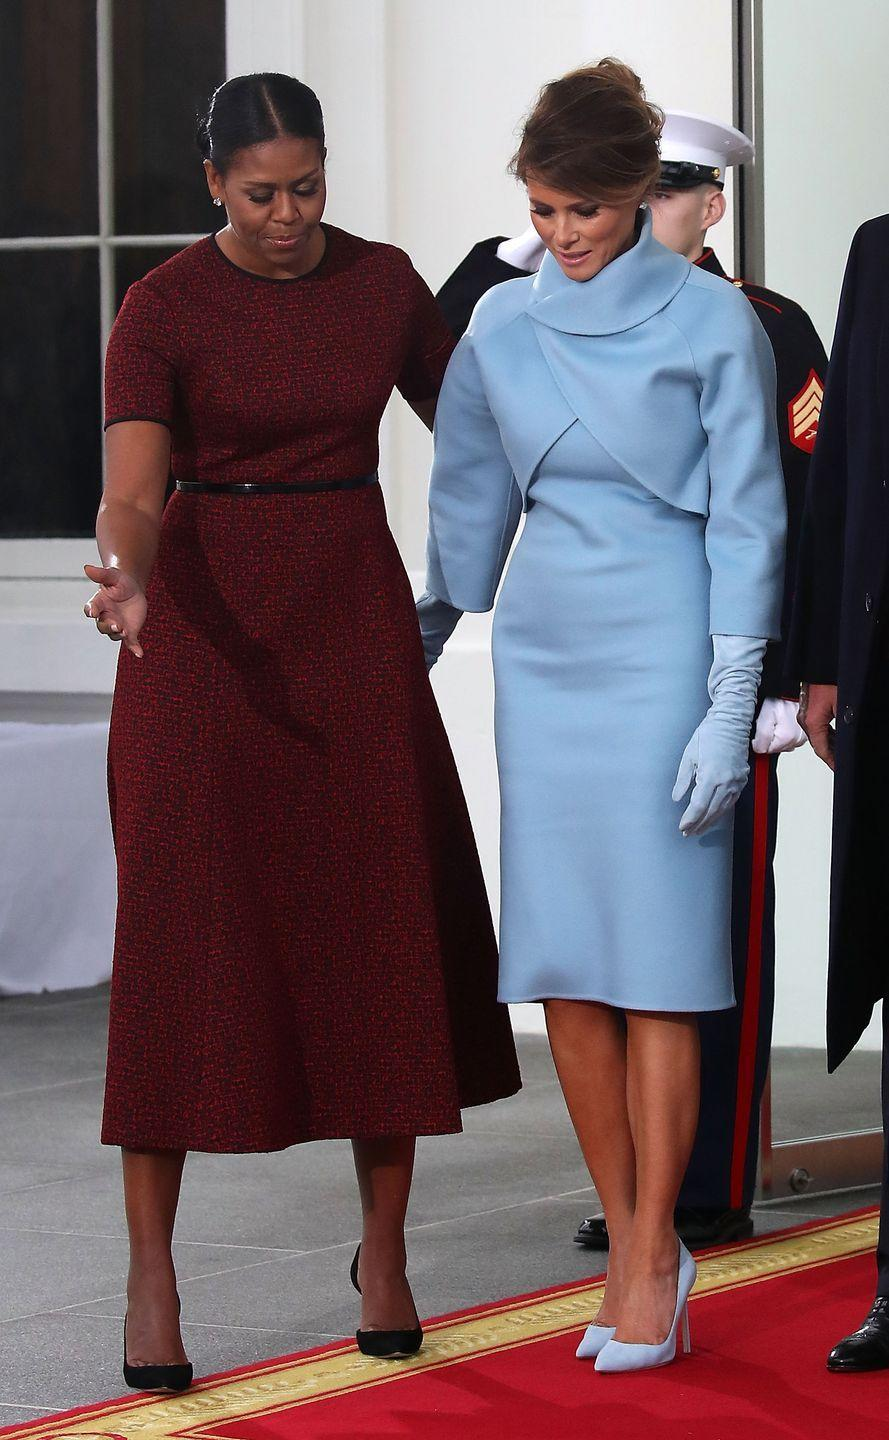 """<p>The official Twitter account for the First Lady of the United States, <a href=""""https://twitter.com/FLOTUS"""" rel=""""nofollow noopener"""" target=""""_blank"""" data-ylk=""""slk:@FLOTUS"""" class=""""link rapid-noclick-resp"""">@FLOTUS</a>, was passed <a href=""""https://www.vanityfair.com/style/2017/01/melania-trump-taking-over-flotus-twitter-account"""" rel=""""nofollow noopener"""" target=""""_blank"""" data-ylk=""""slk:from Michelle Obama to Melania Trump"""" class=""""link rapid-noclick-resp"""">from Michelle Obama to Melania Trump</a> in 2017. Going forward, Twitter has said that the <a href=""""https://www.npr.org/sections/biden-transition-updates/2020/12/23/949632440/twitter-will-reset-potus-account-to-0-followers-after-biden-transition"""" rel=""""nofollow noopener"""" target=""""_blank"""" data-ylk=""""slk:institutional White House Twitter accounts"""" class=""""link rapid-noclick-resp"""">institutional White House Twitter accounts</a> will not """"automatically retain their existing followers,"""" meaning when a new first lady takes over, the FLOTUS account will start with zero followers.</p>"""